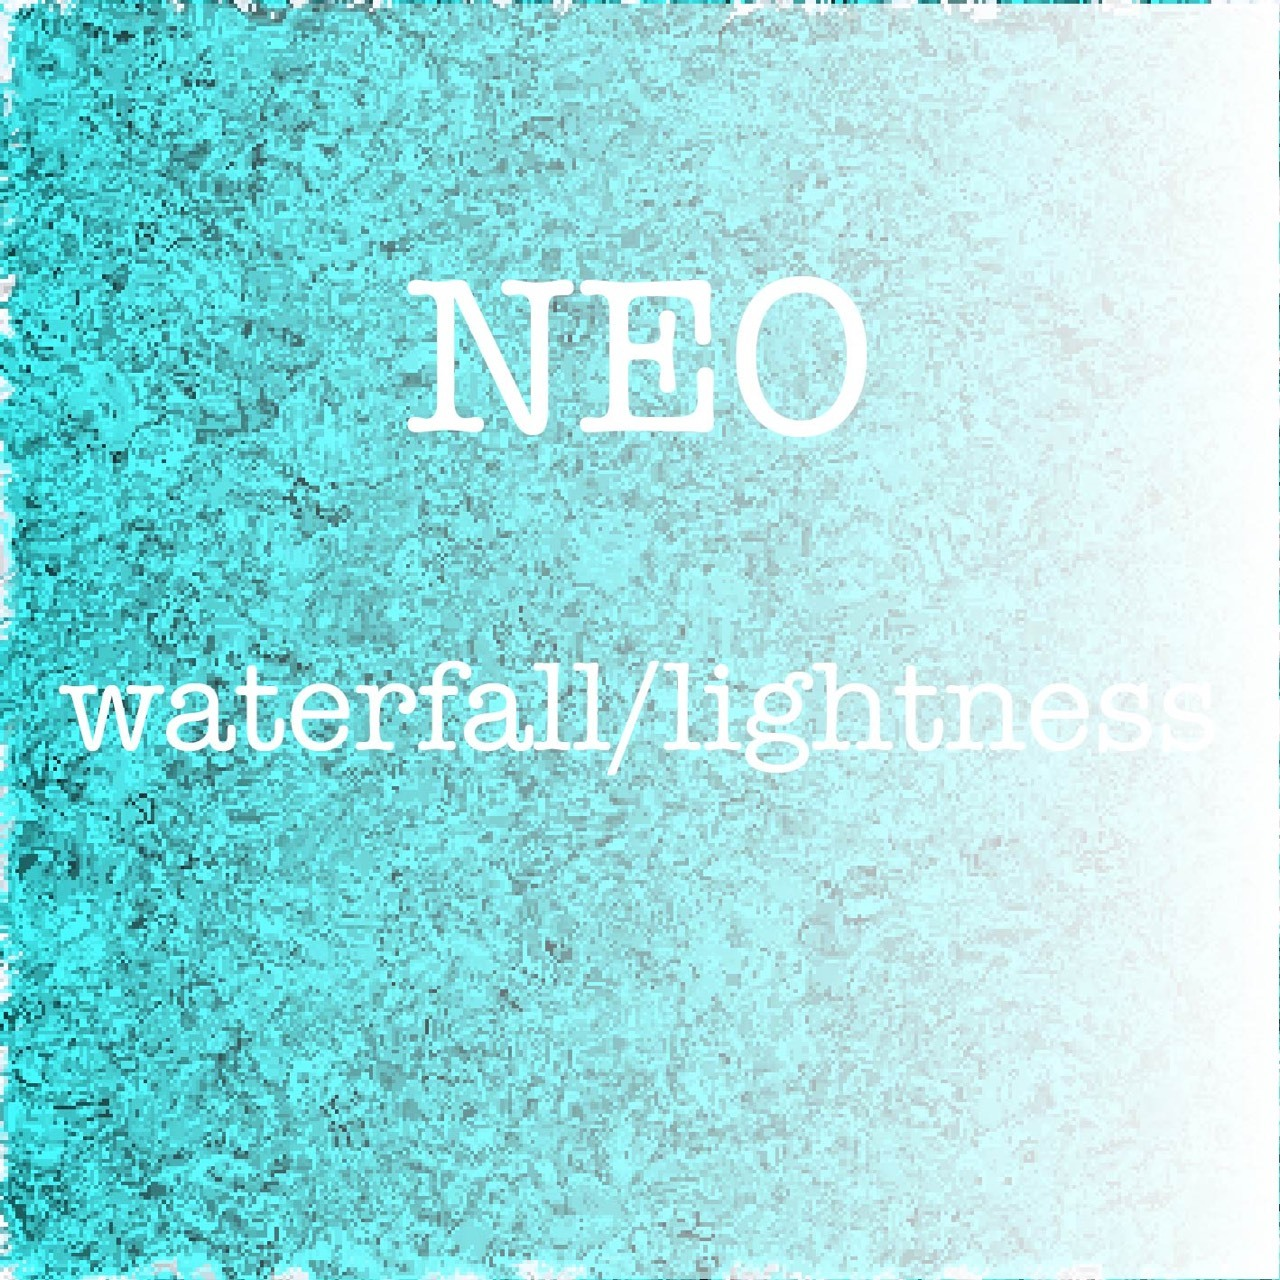 waterfall / lightness